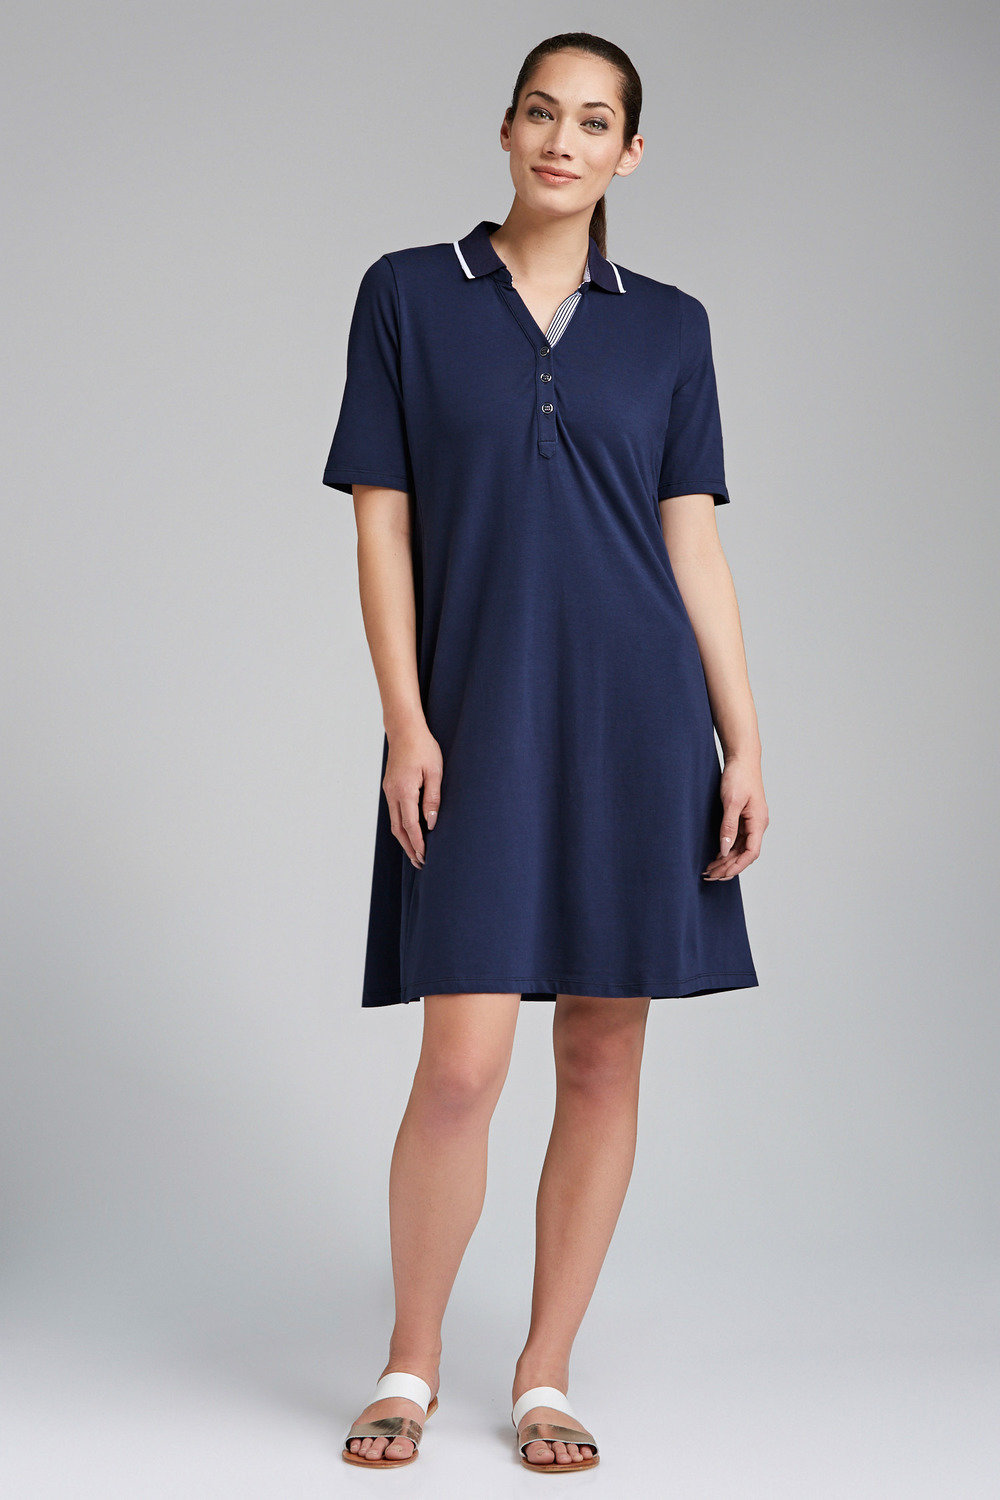 ed87d1addc14 Capture Polo Swing Dress Online | Shop EziBuy